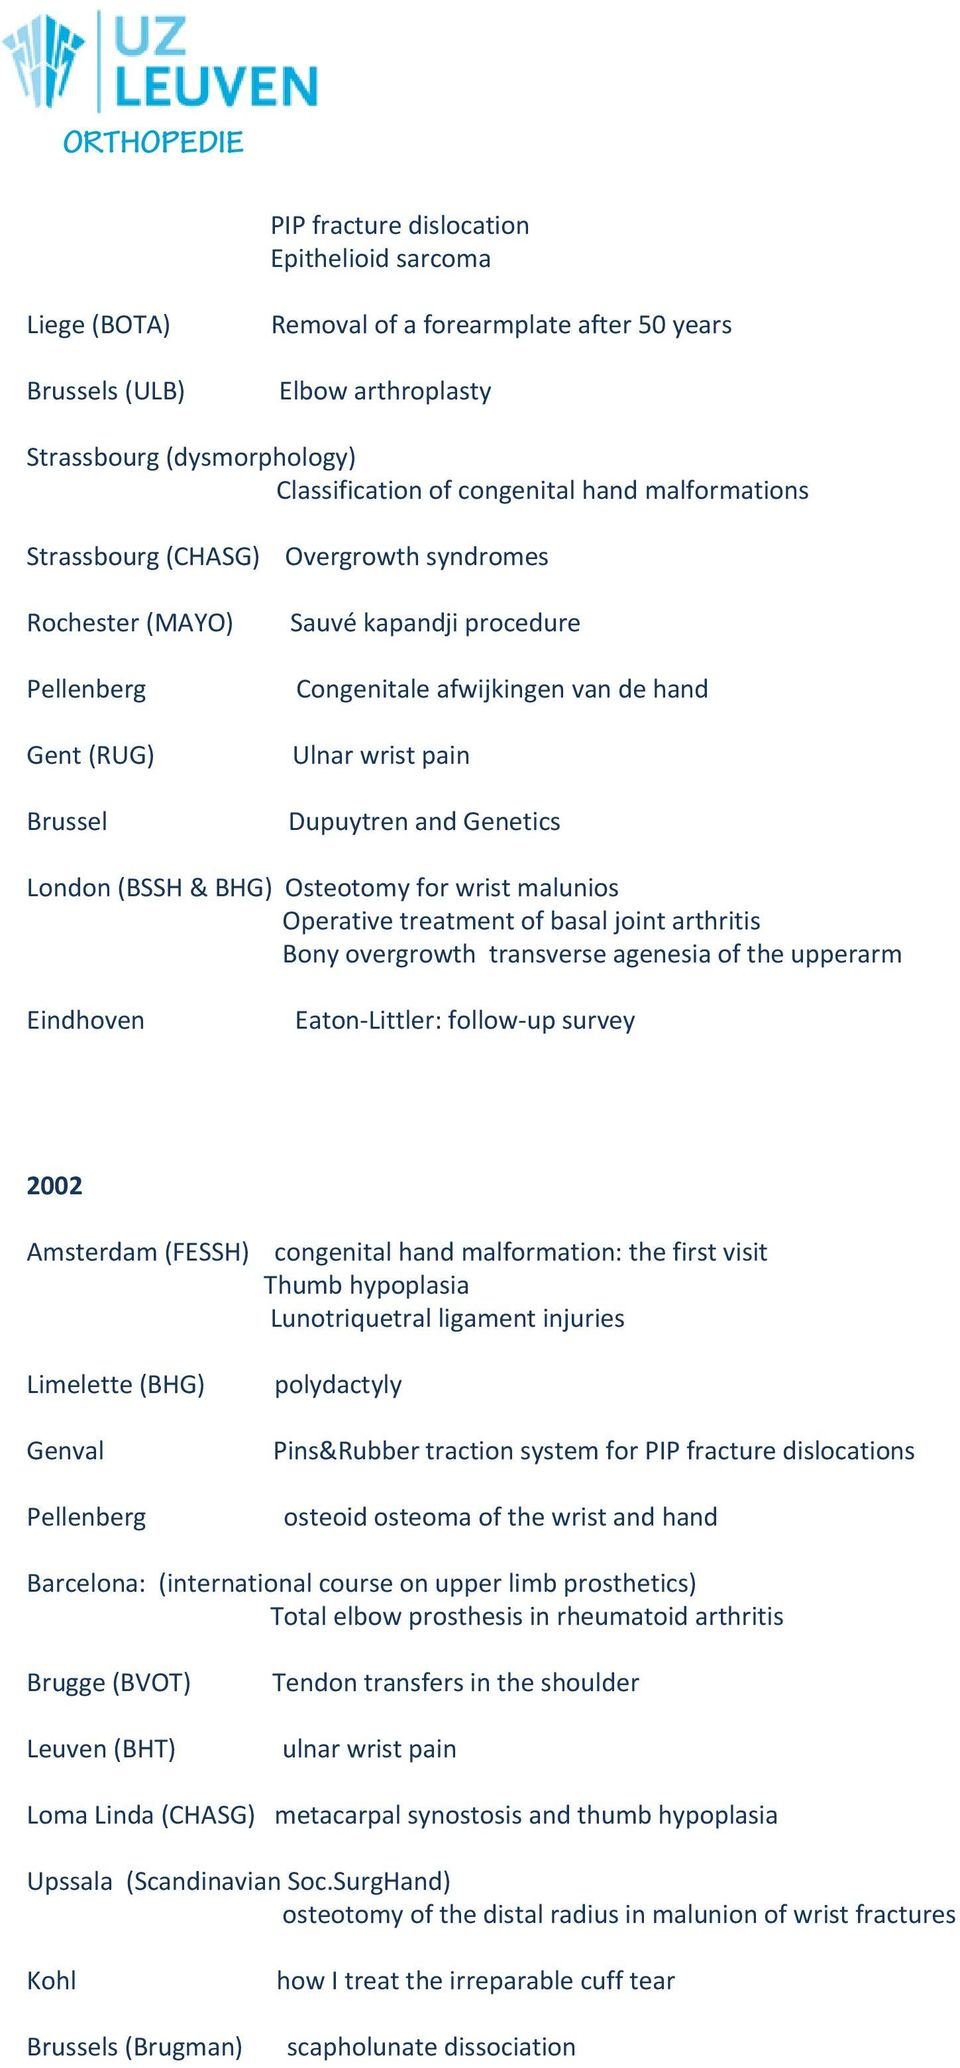 Genetics London (BSSH & BHG) Osteotomy for wrist malunios Operative treatment of basal joint arthritis Bony overgrowth transverse agenesia of the upperarm Eindhoven Eaton Littler: follow up survey